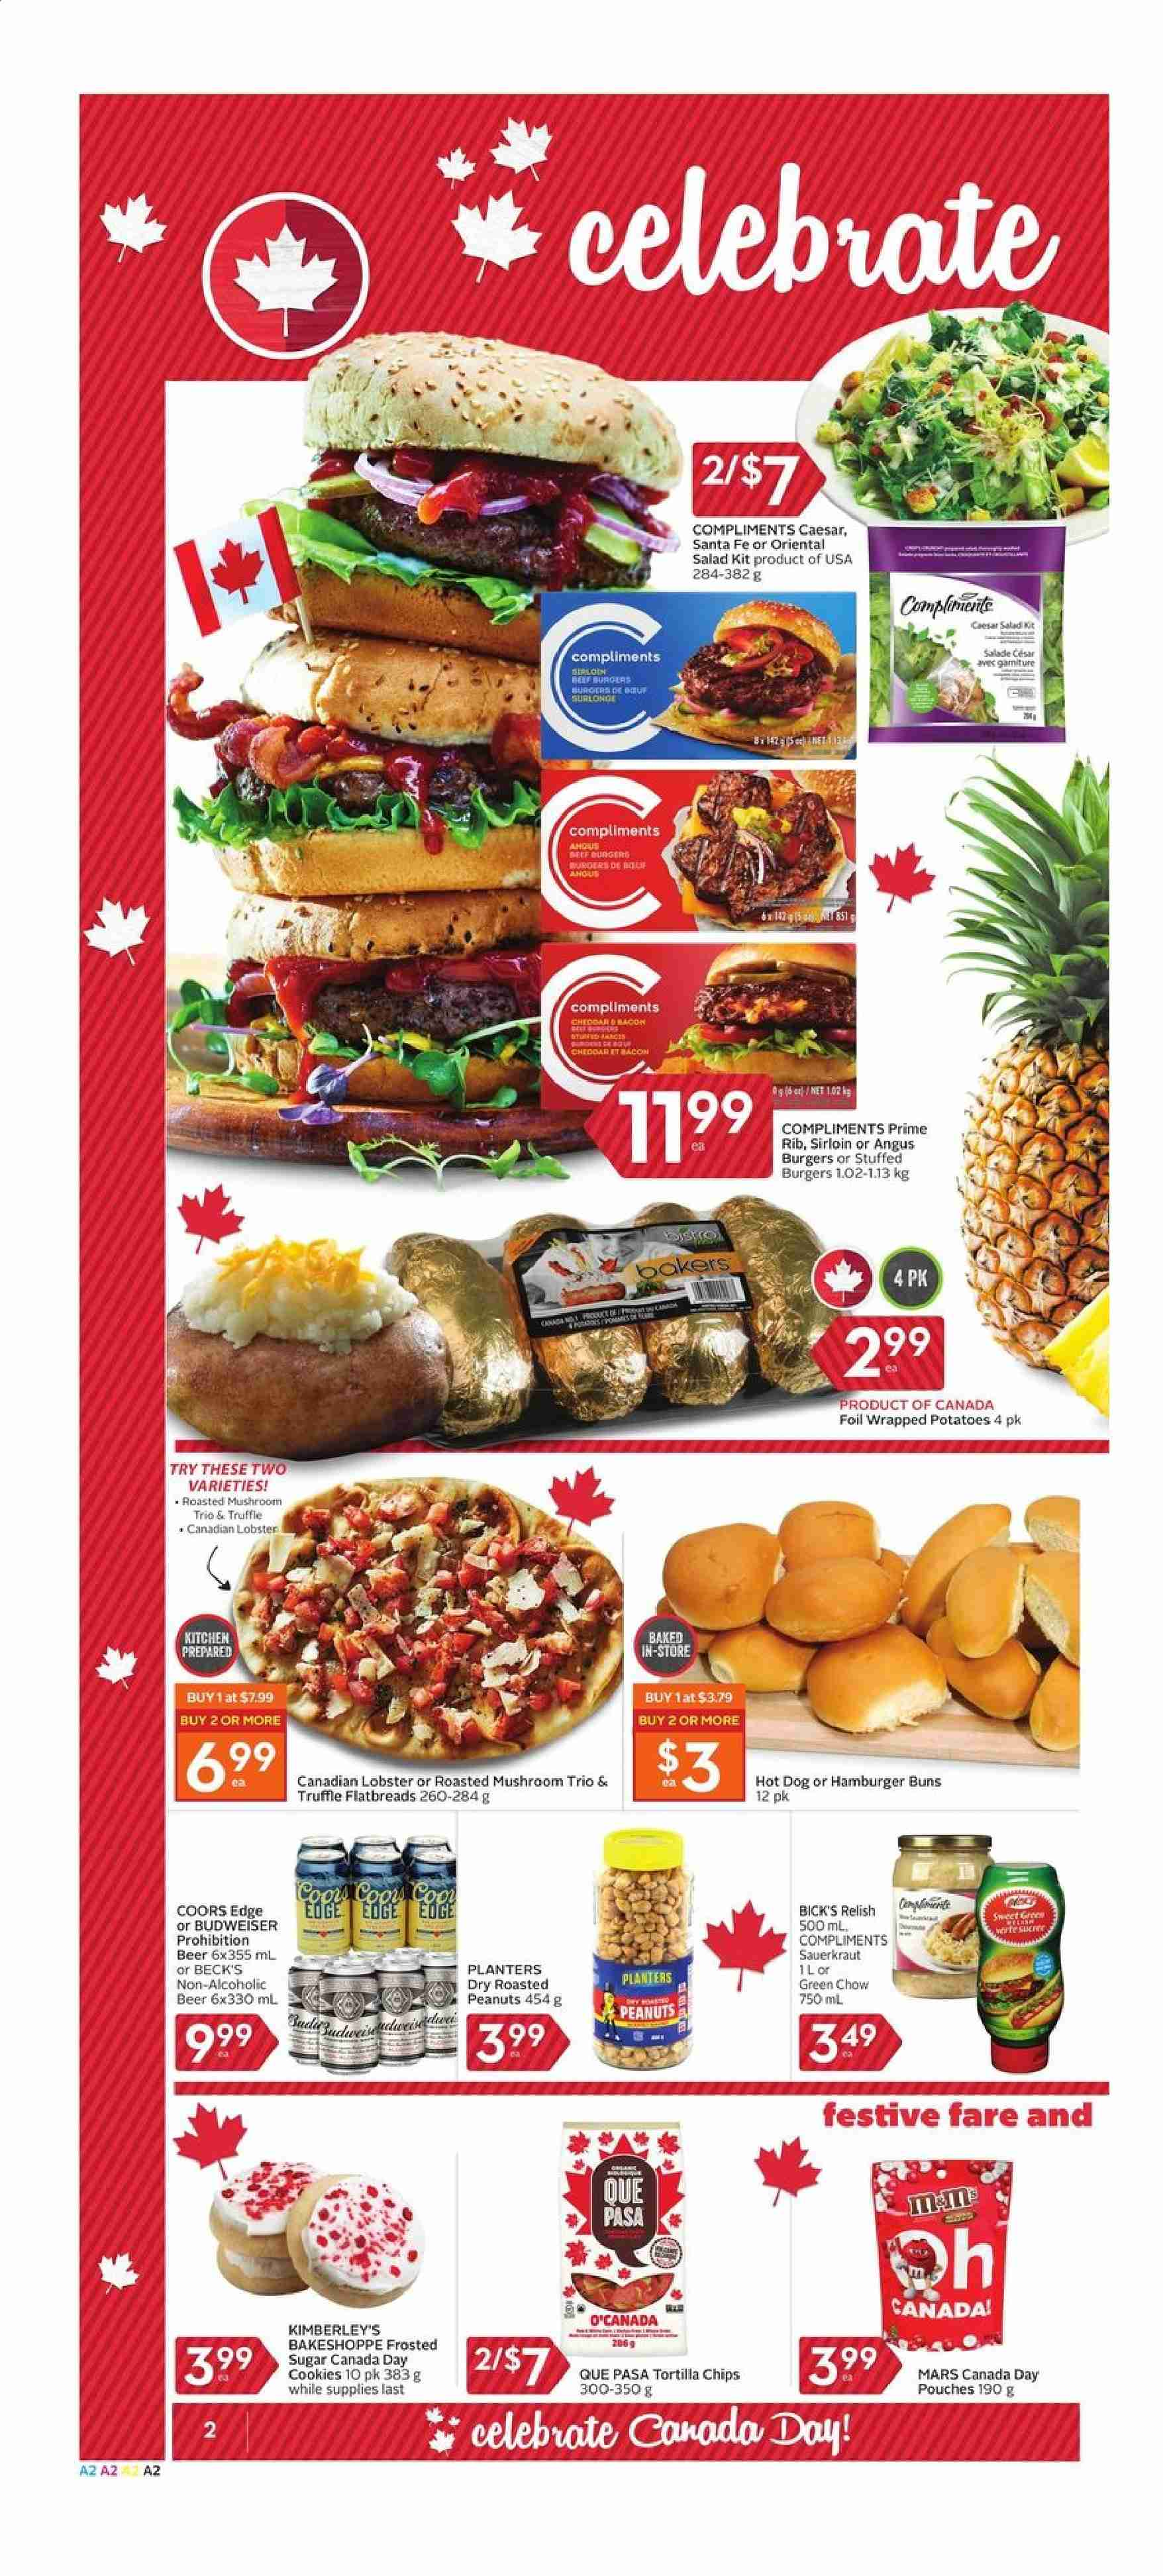 Foodland Flyer  - June 27, 2019 - July 03, 2019. Page 2.